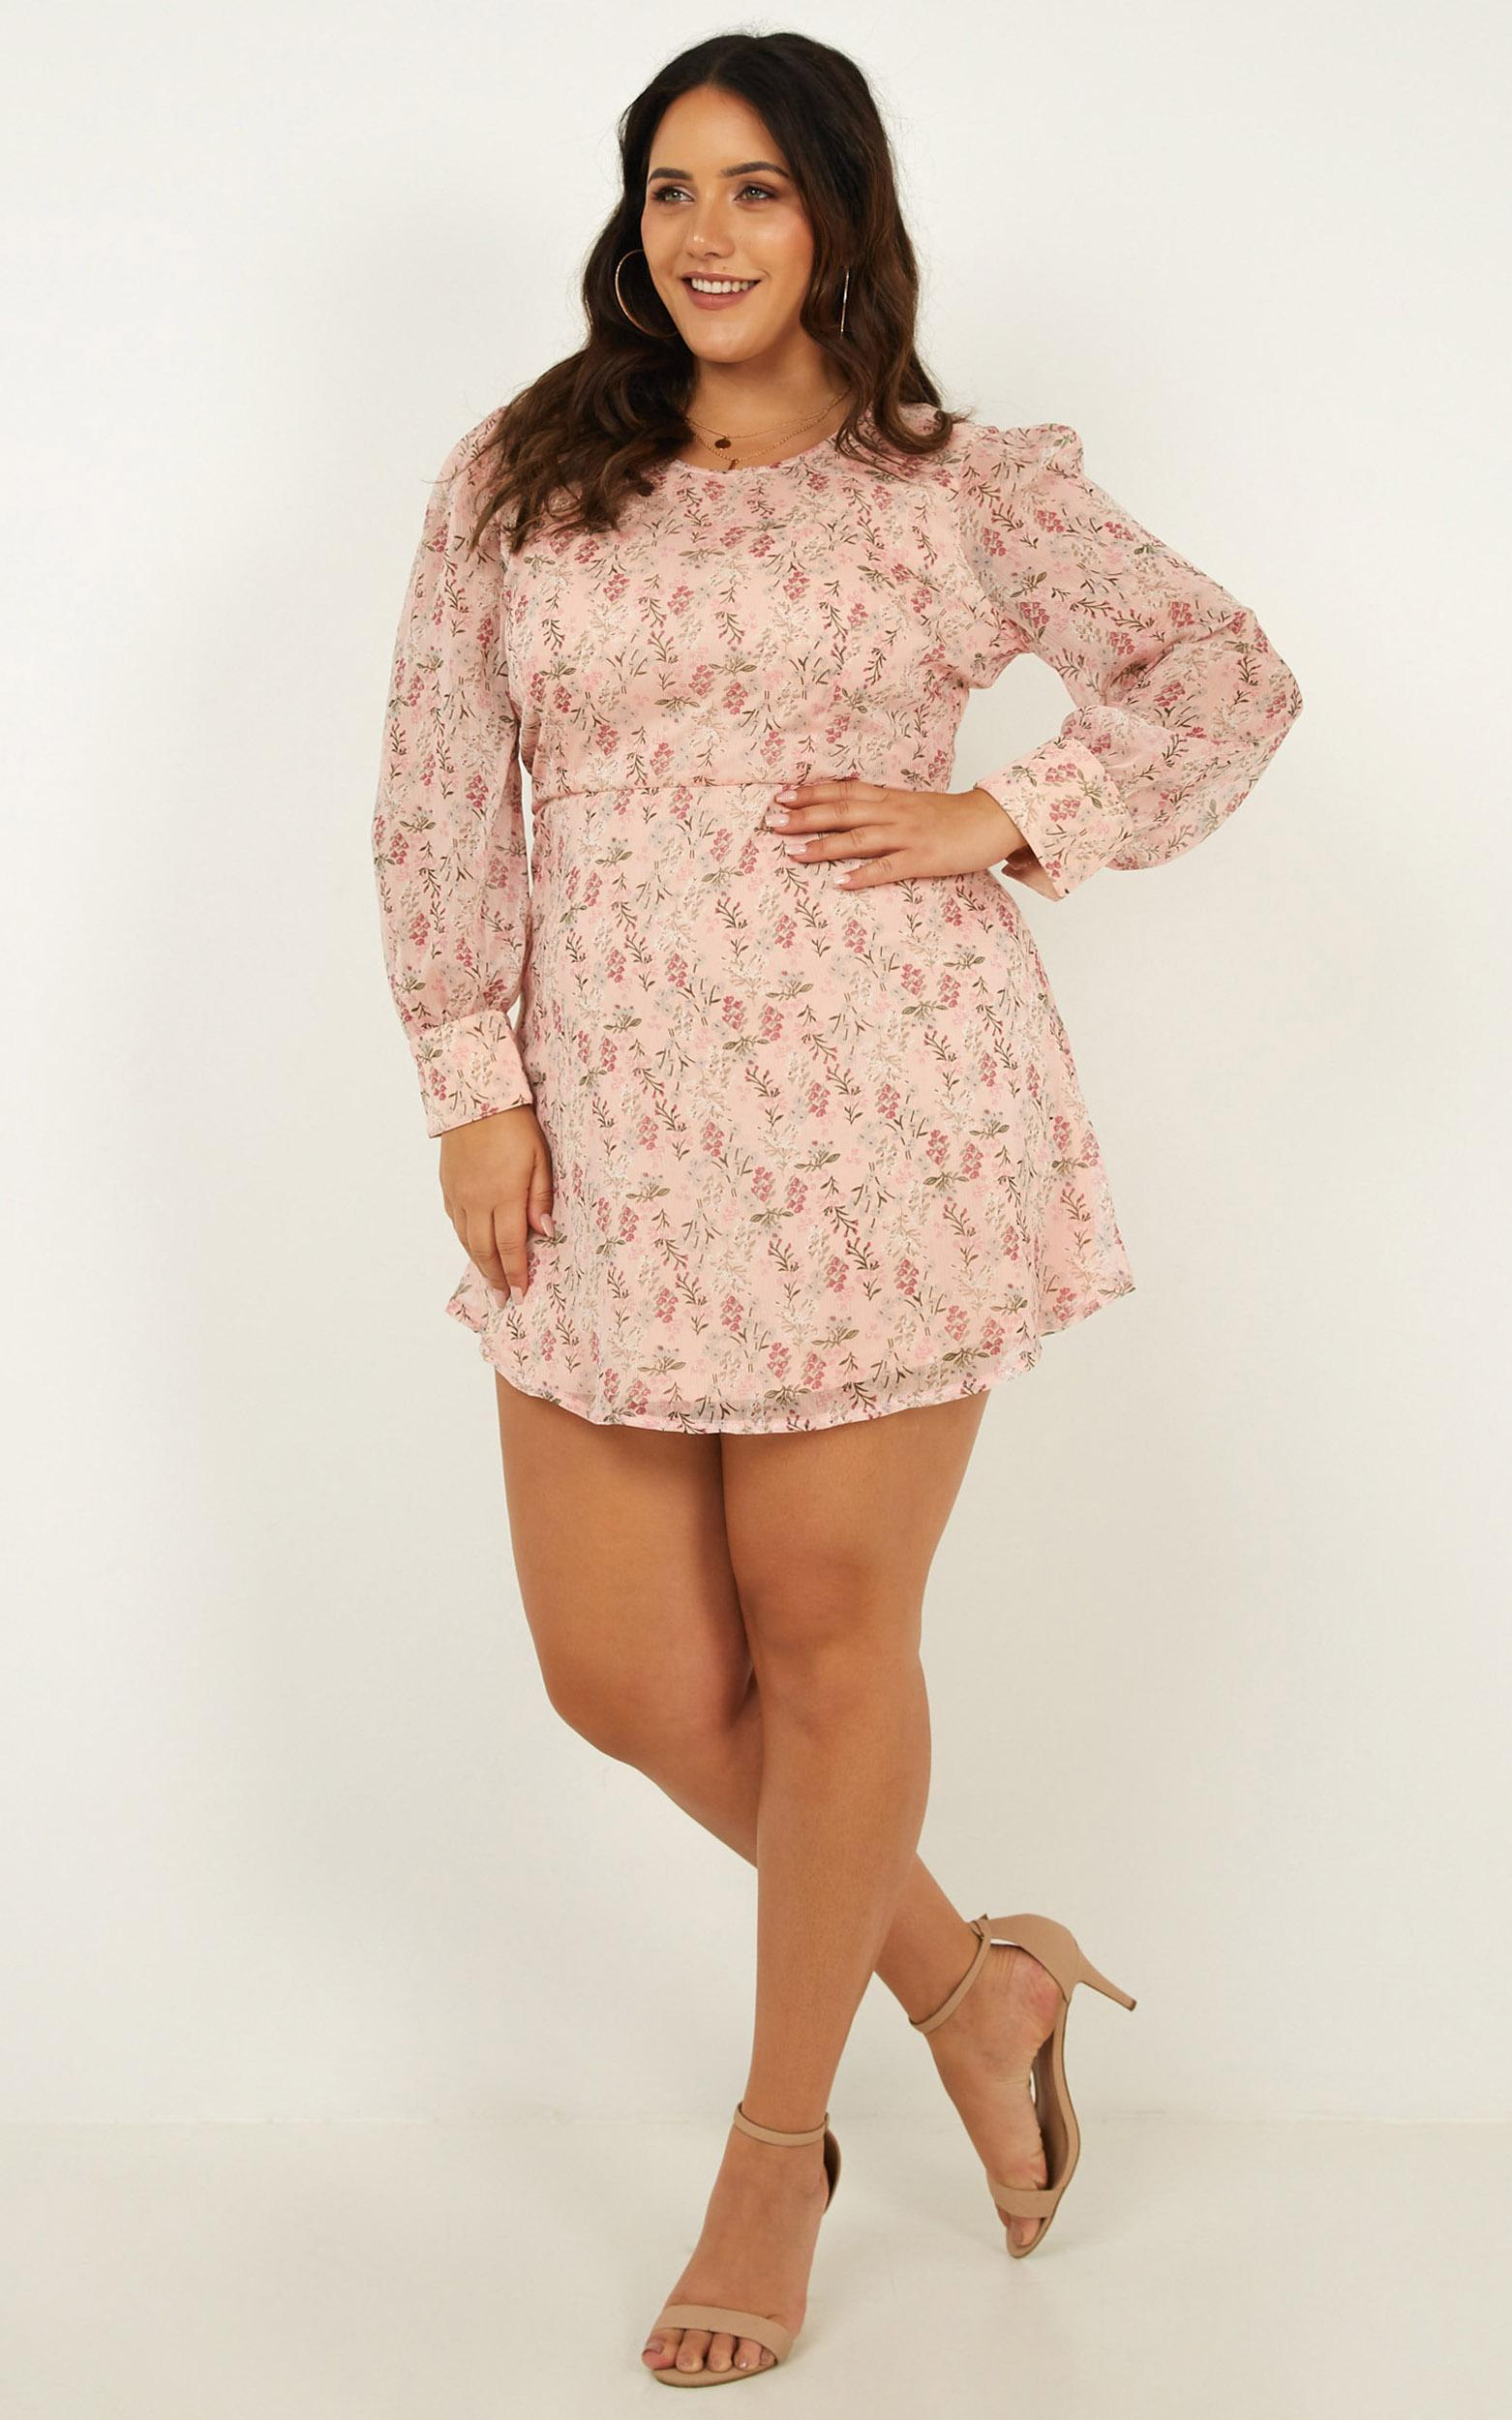 Picnic Days Dress in blush floral - 6 (XS), Blush, hi-res image number null